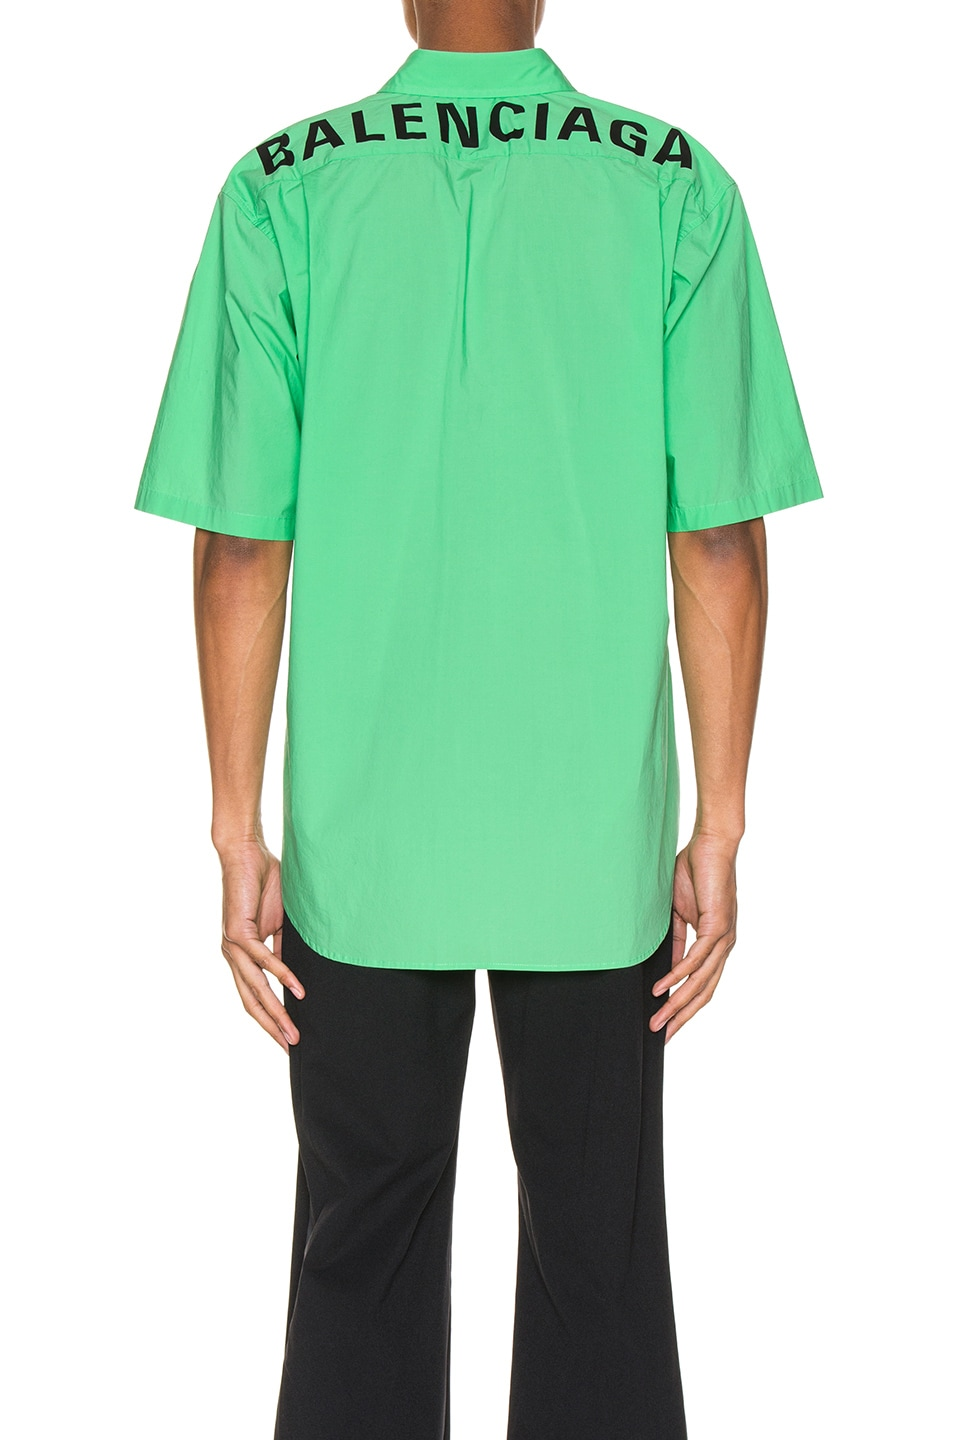 Image 4 of Balenciaga Short Sleeve Shirt in Green